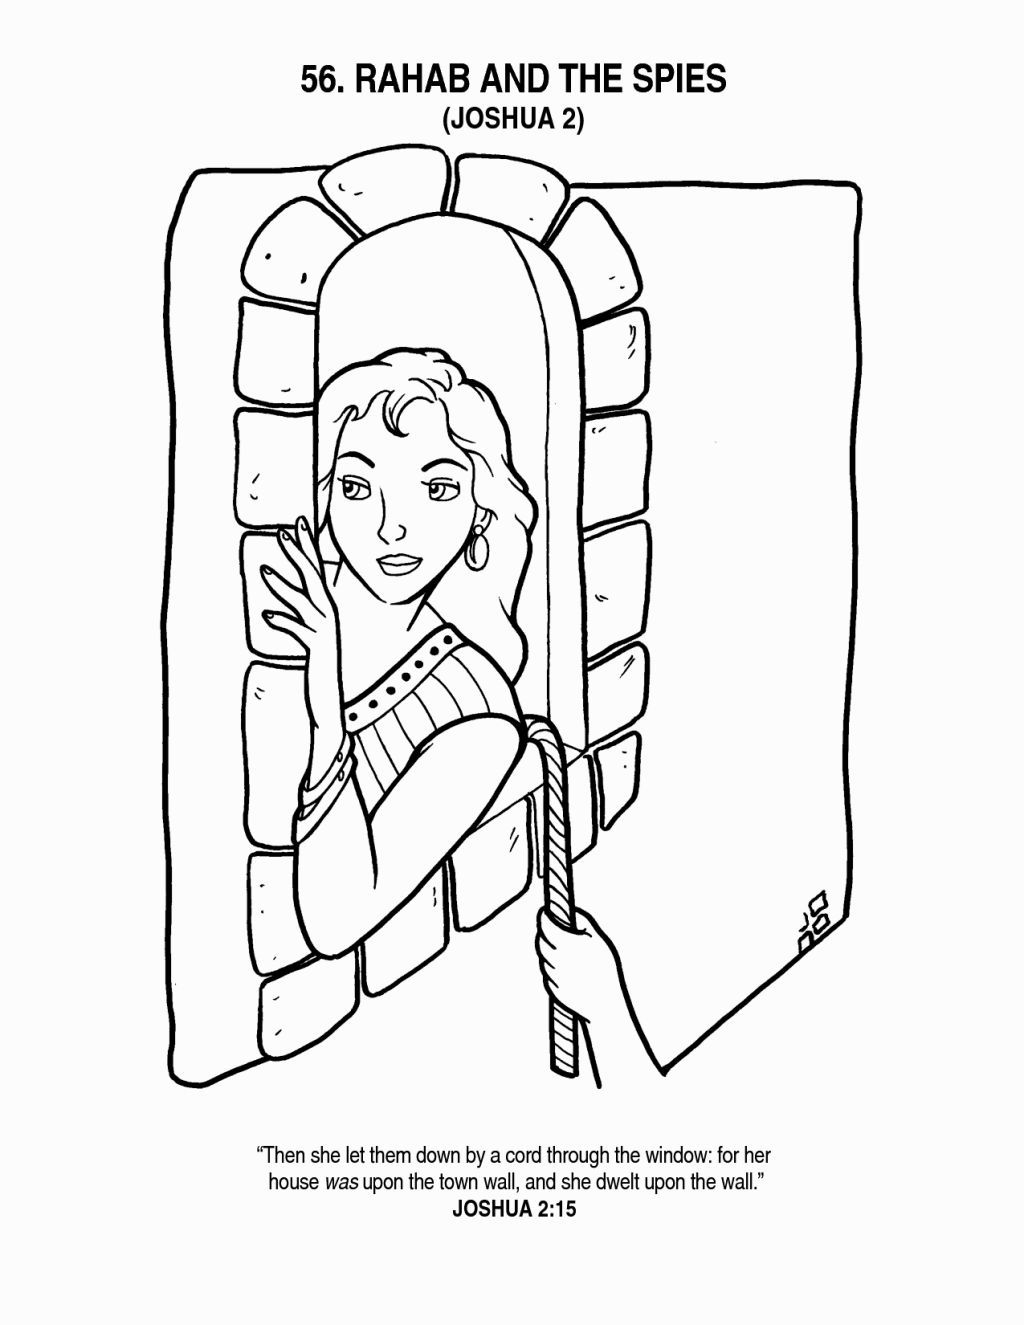 Rahab Coloring Page | Coloring Pages